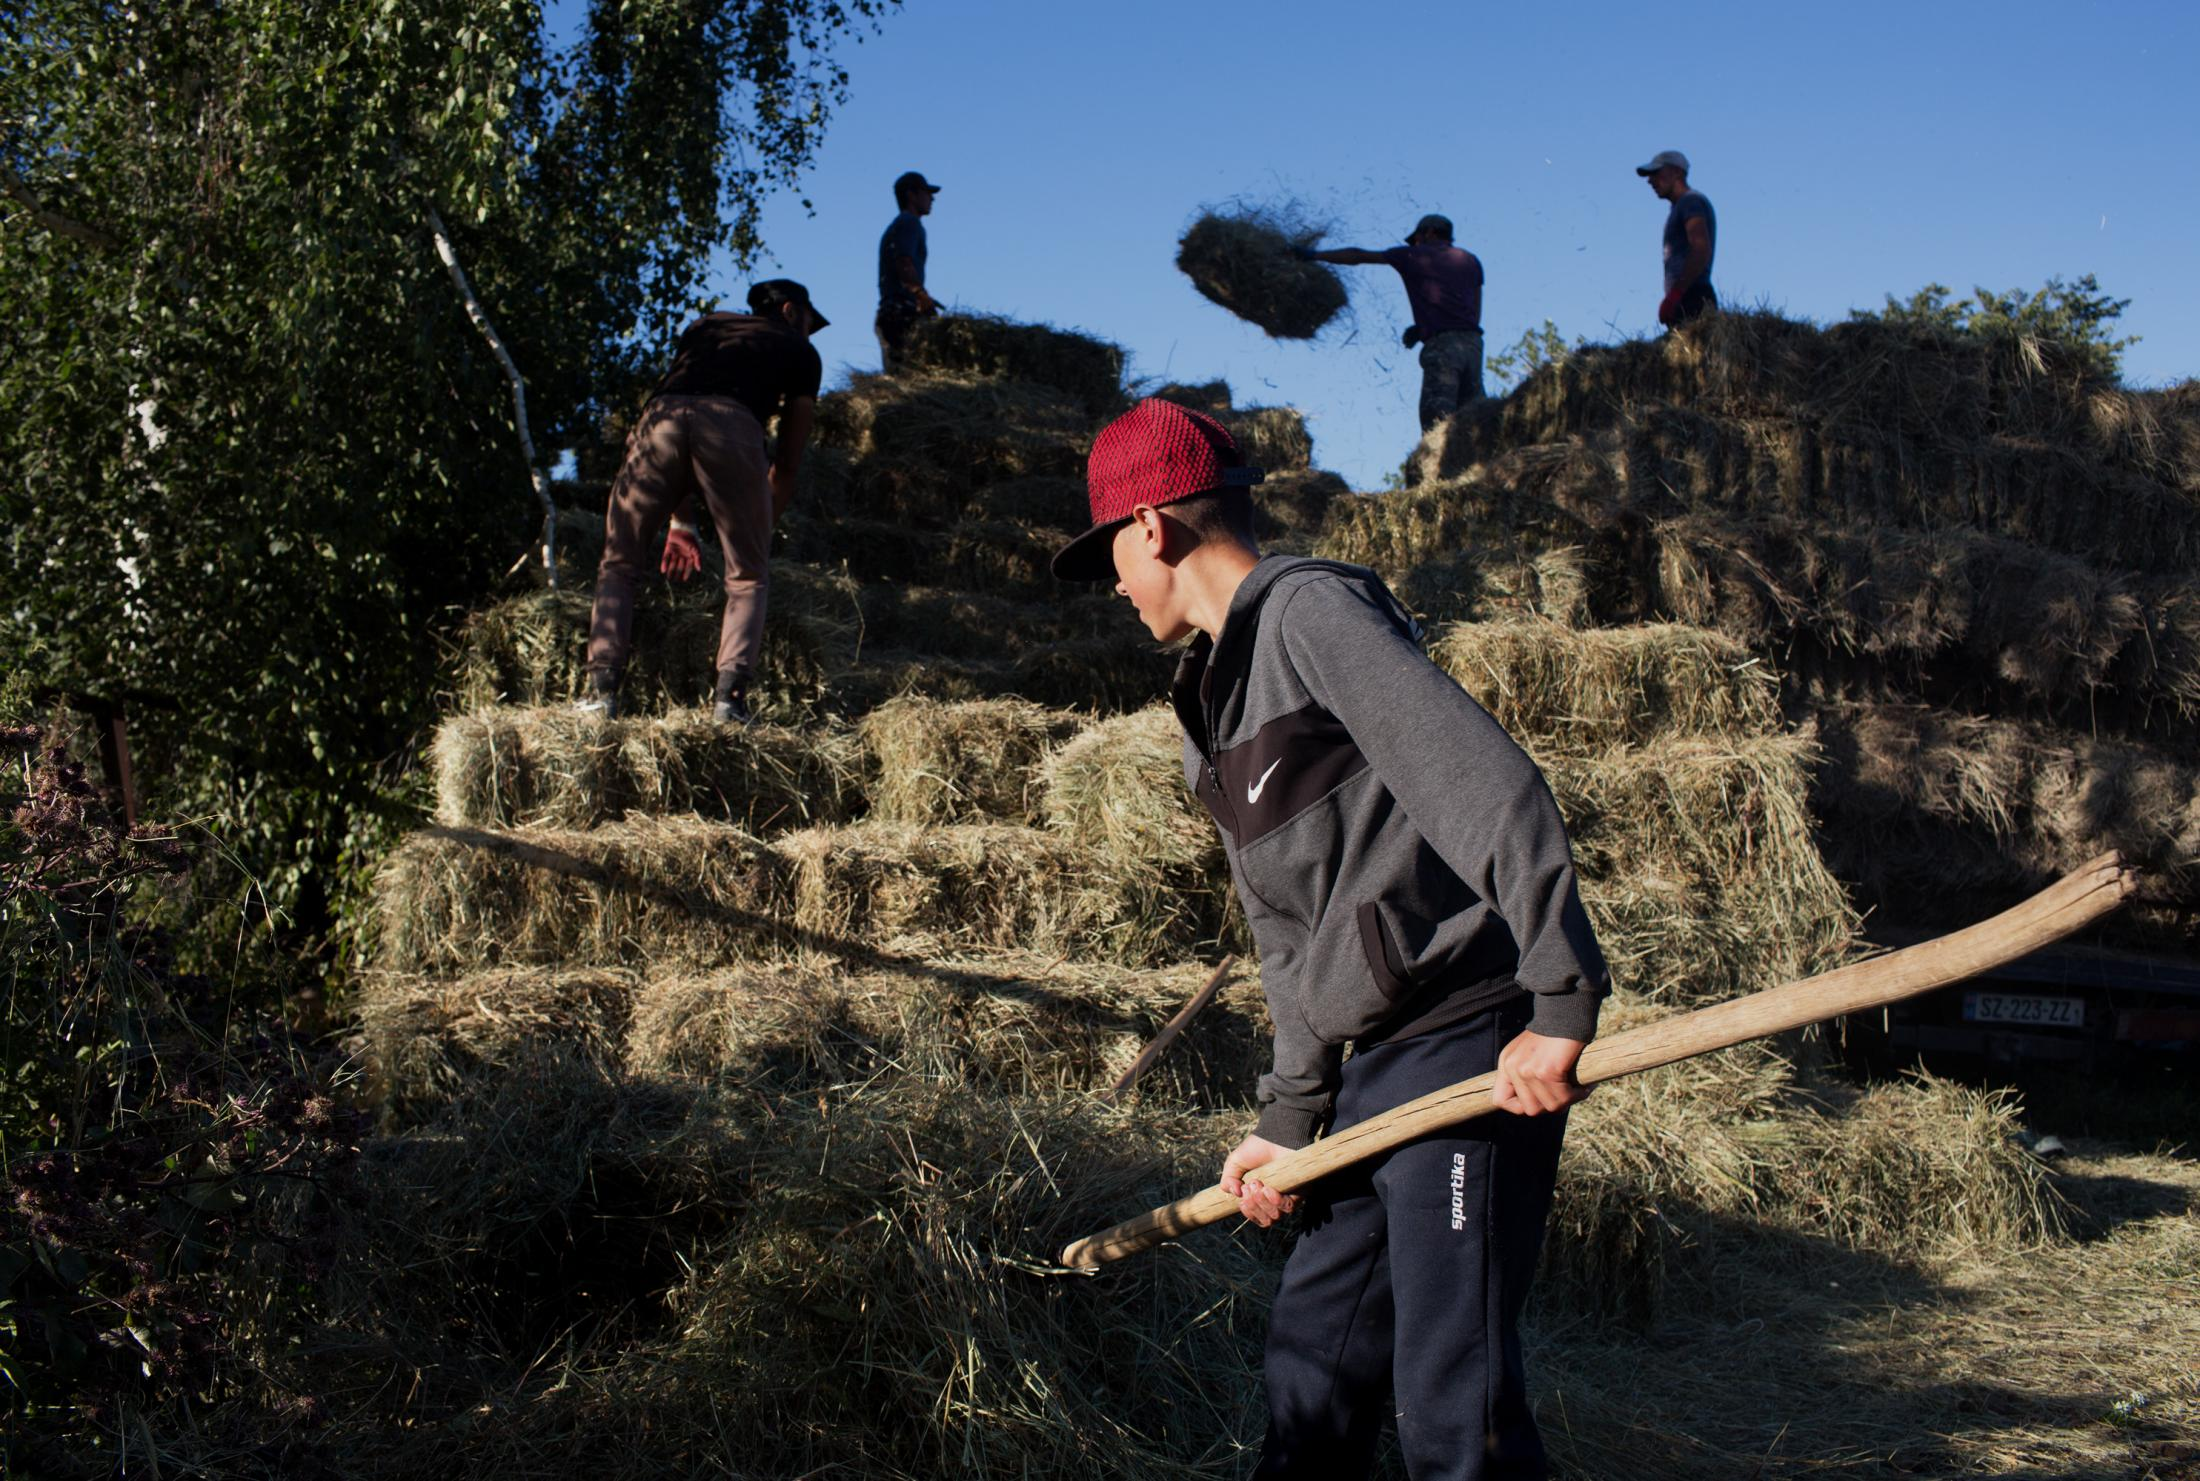 Georgian Christian teens pile bales of hay to be fed to animals during the long winter months.